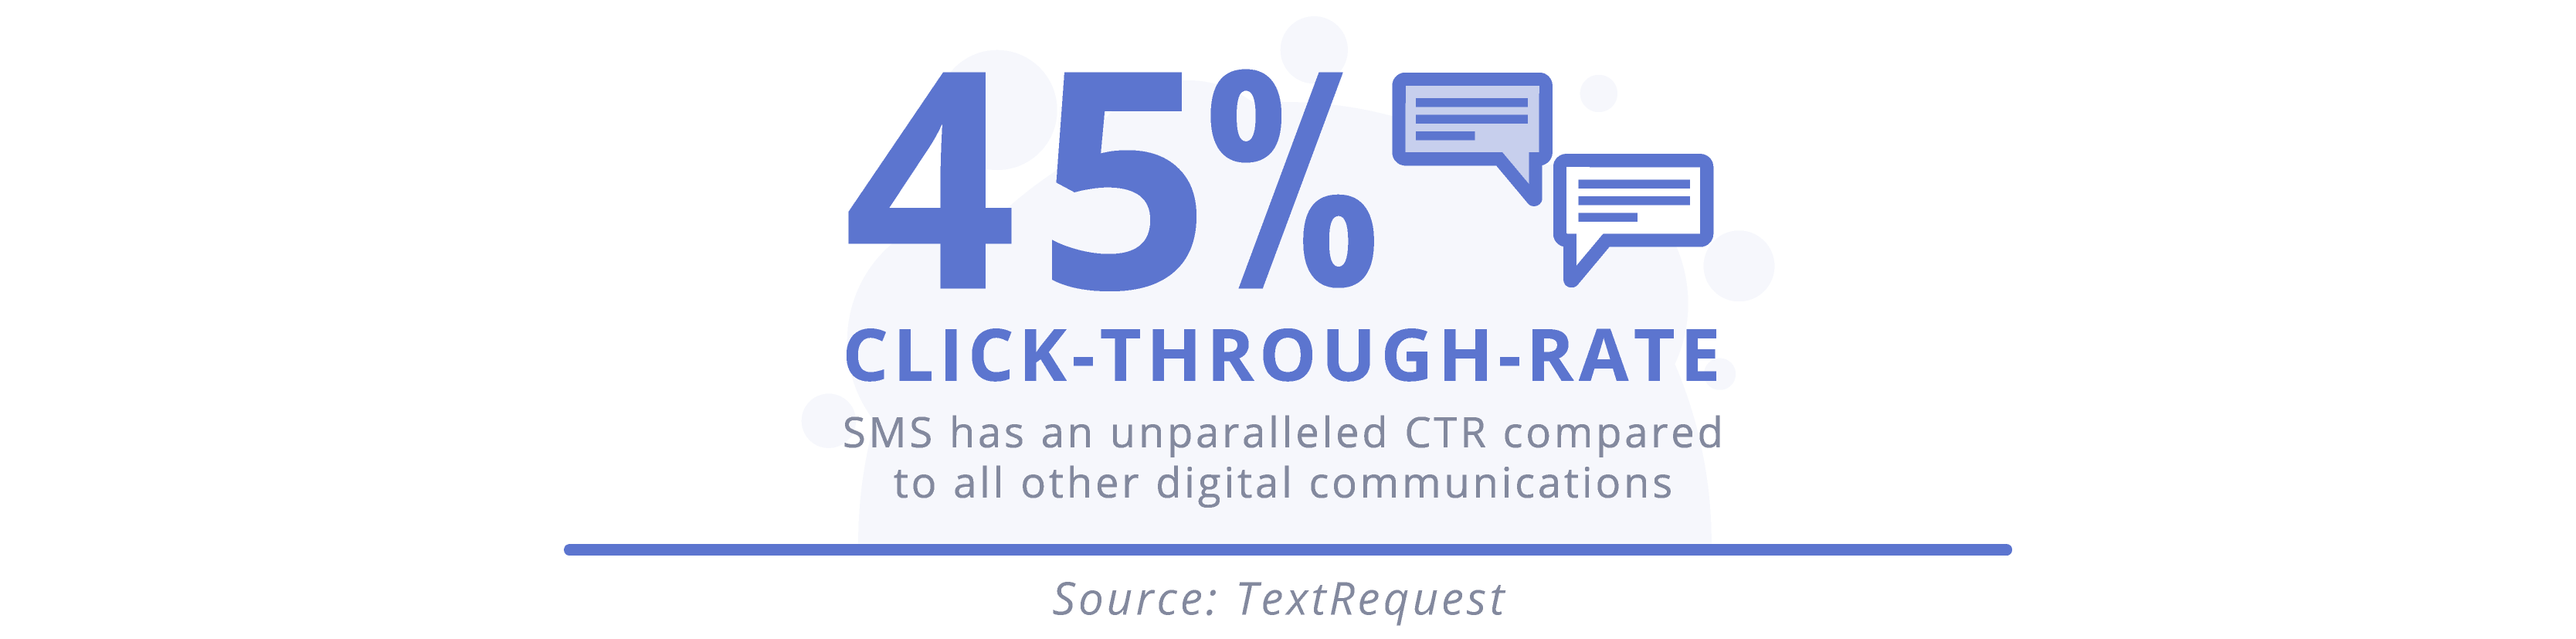 text-message-marketing-clickthrough-rates